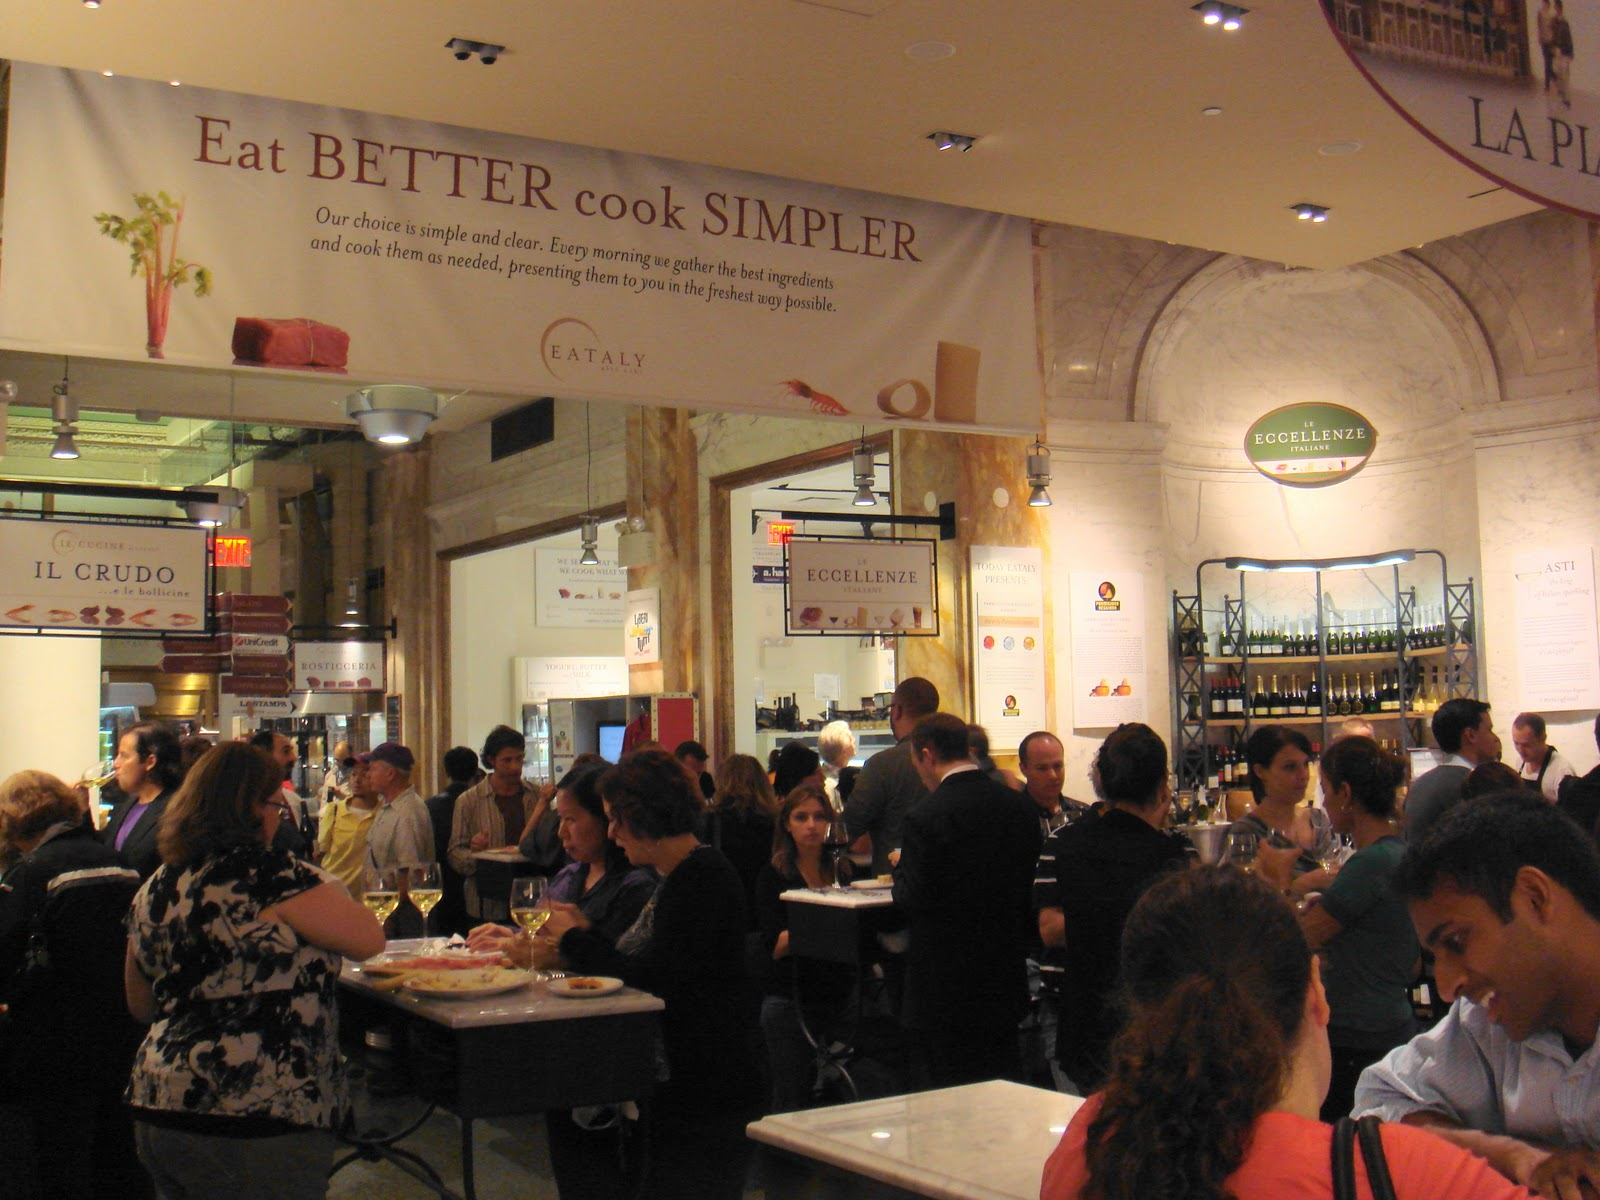 Eataly--cheese and pasta stations | Chubby\'s Food Odyssey